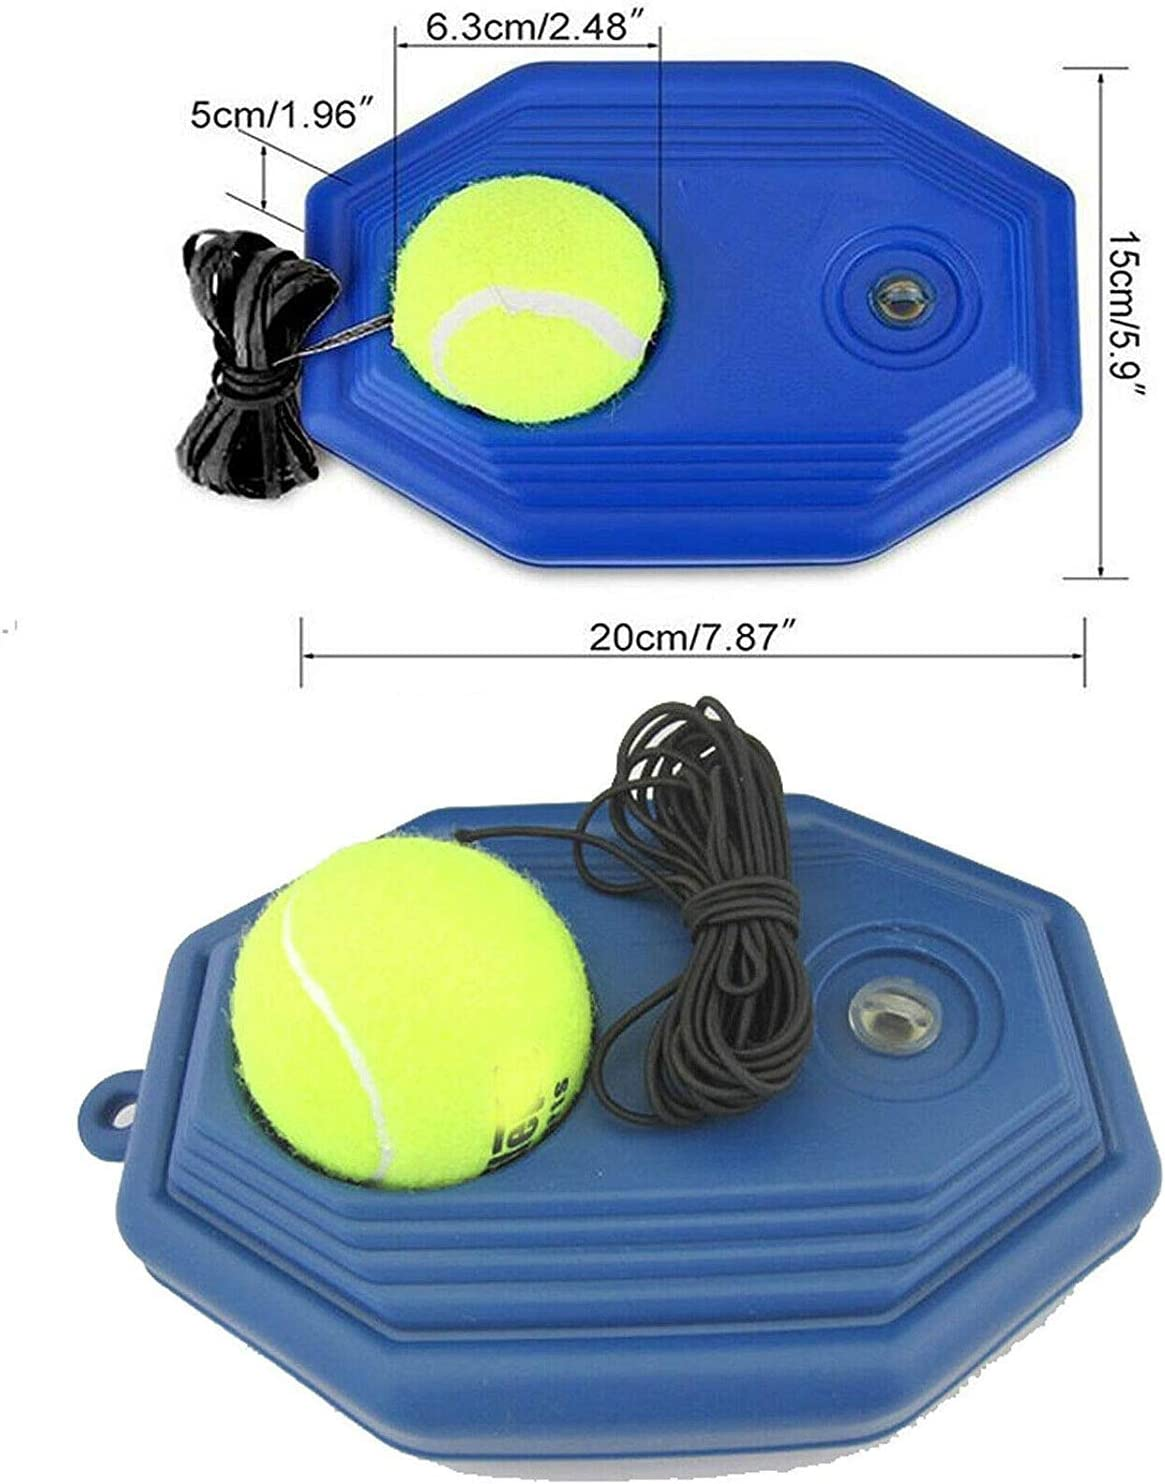 Perfect Solo Tennis Trainer Tennis Trainer Rebounder Ball Trainer Cemented Baseboard with Rope Self-Study Tennis Rebound Player Training Aids Practice Great for beginners and intermediate players